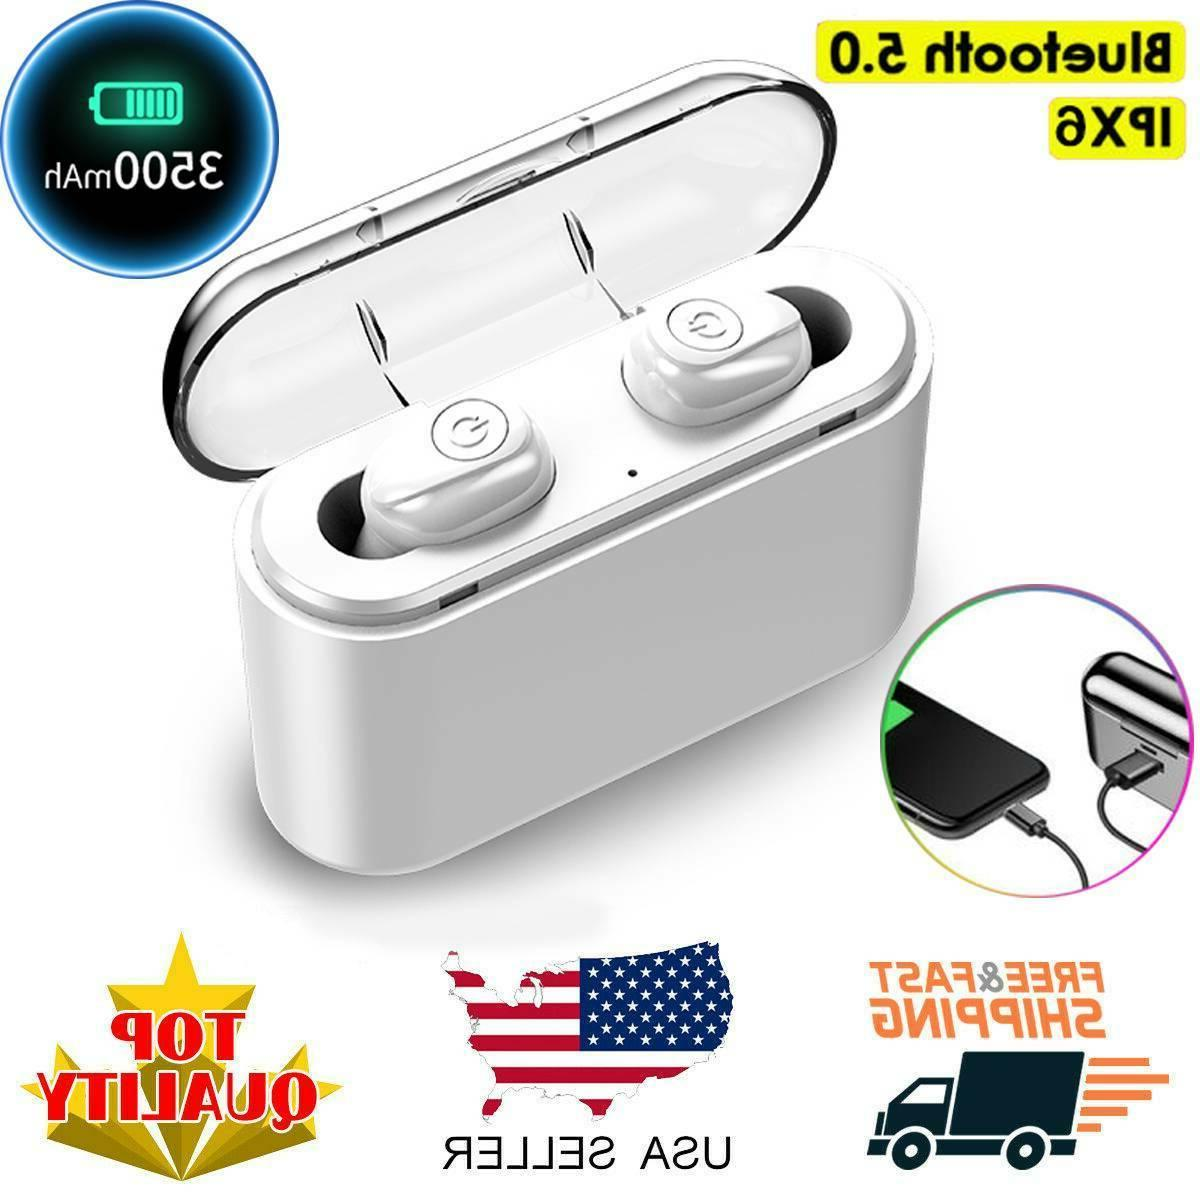 US Waterproof Bluetooth 5.0 Earbuds Earphones Wireless Heads